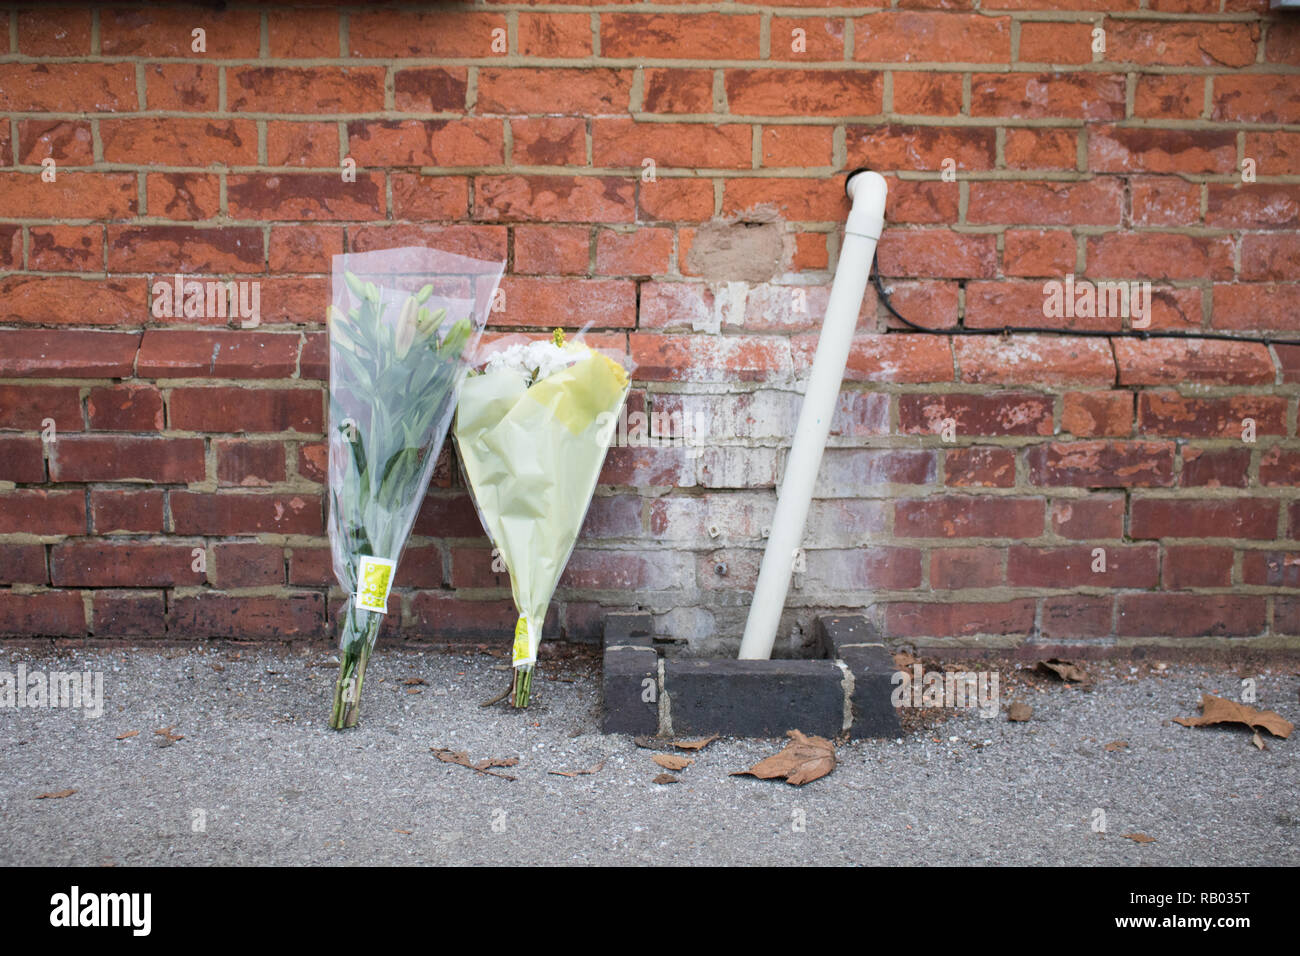 Horsley Surrey, 5th January 2019.  Floral tributes left outside    Horsley Station  platform in Surrey where a man who has been named as Lee Pomeroy aged 51 was discovered fatally stabbed on an inbound  train from Guilford to Waterloo on Friday Credit: amer ghazzal/Alamy Live News - Stock Image